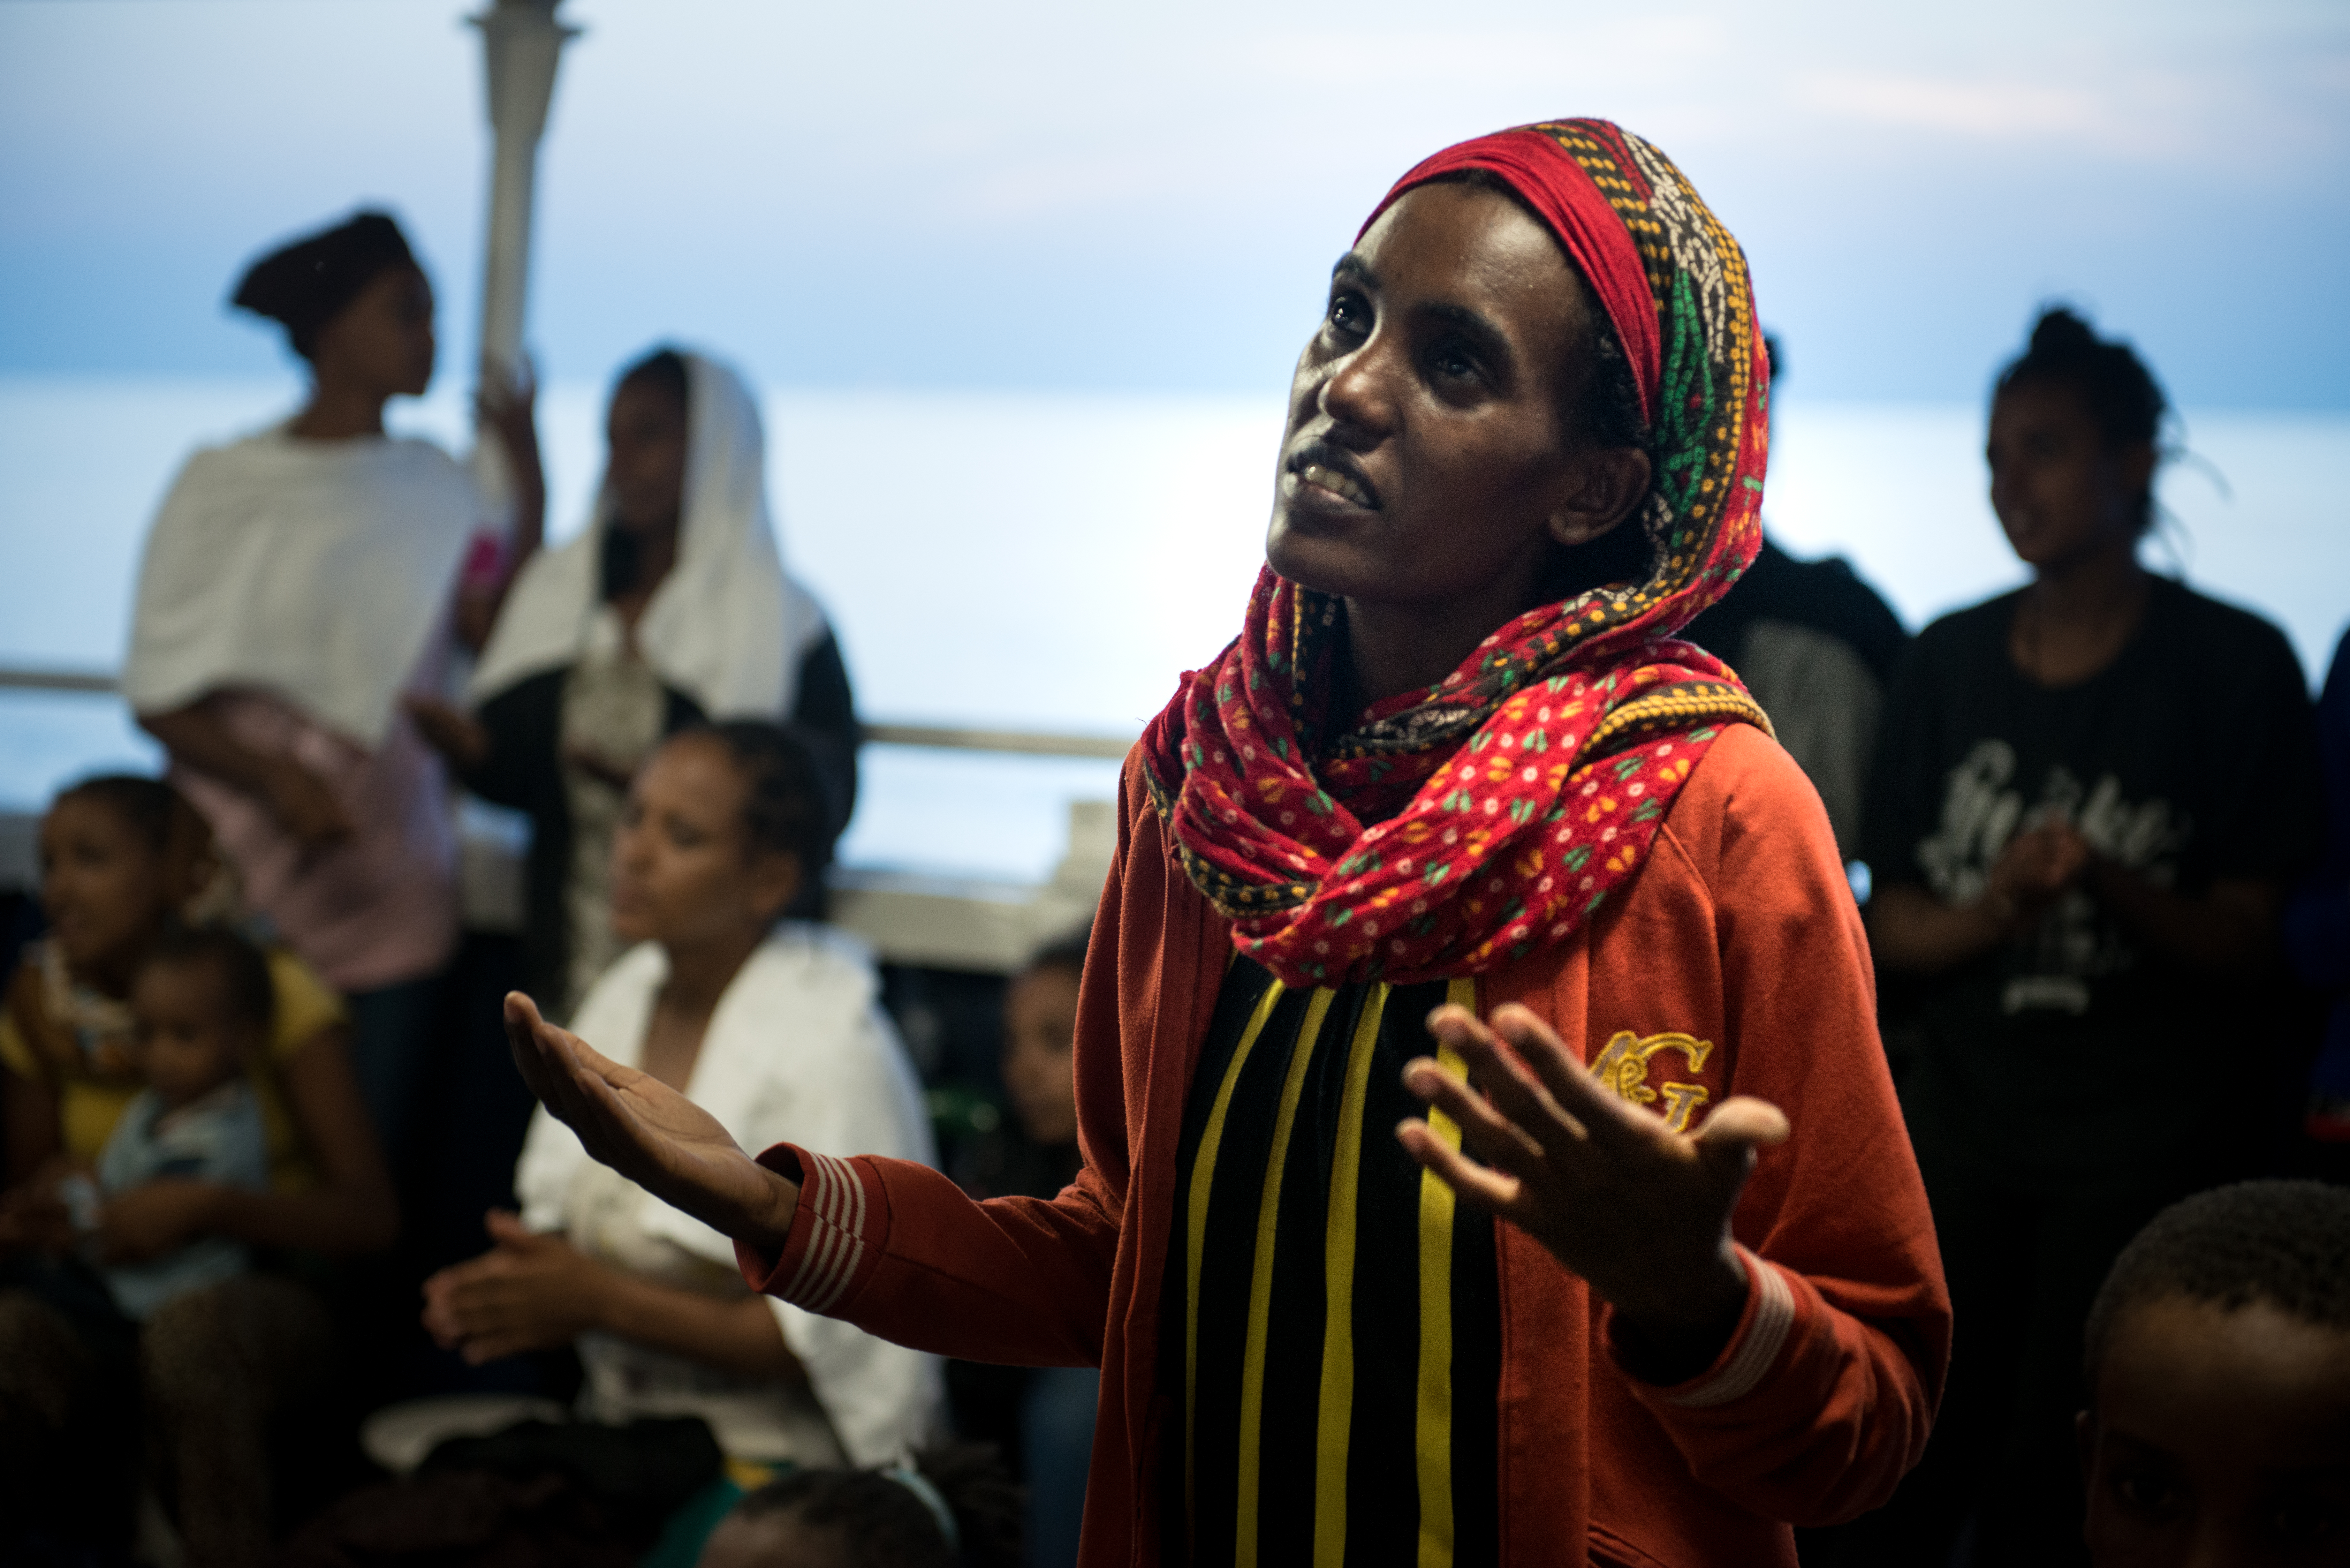 An Eritrean woman singing a prayer with other women and children after being rescued 02 September 2015 by the MSF MY Phoenix search and rescue vessel at sea.